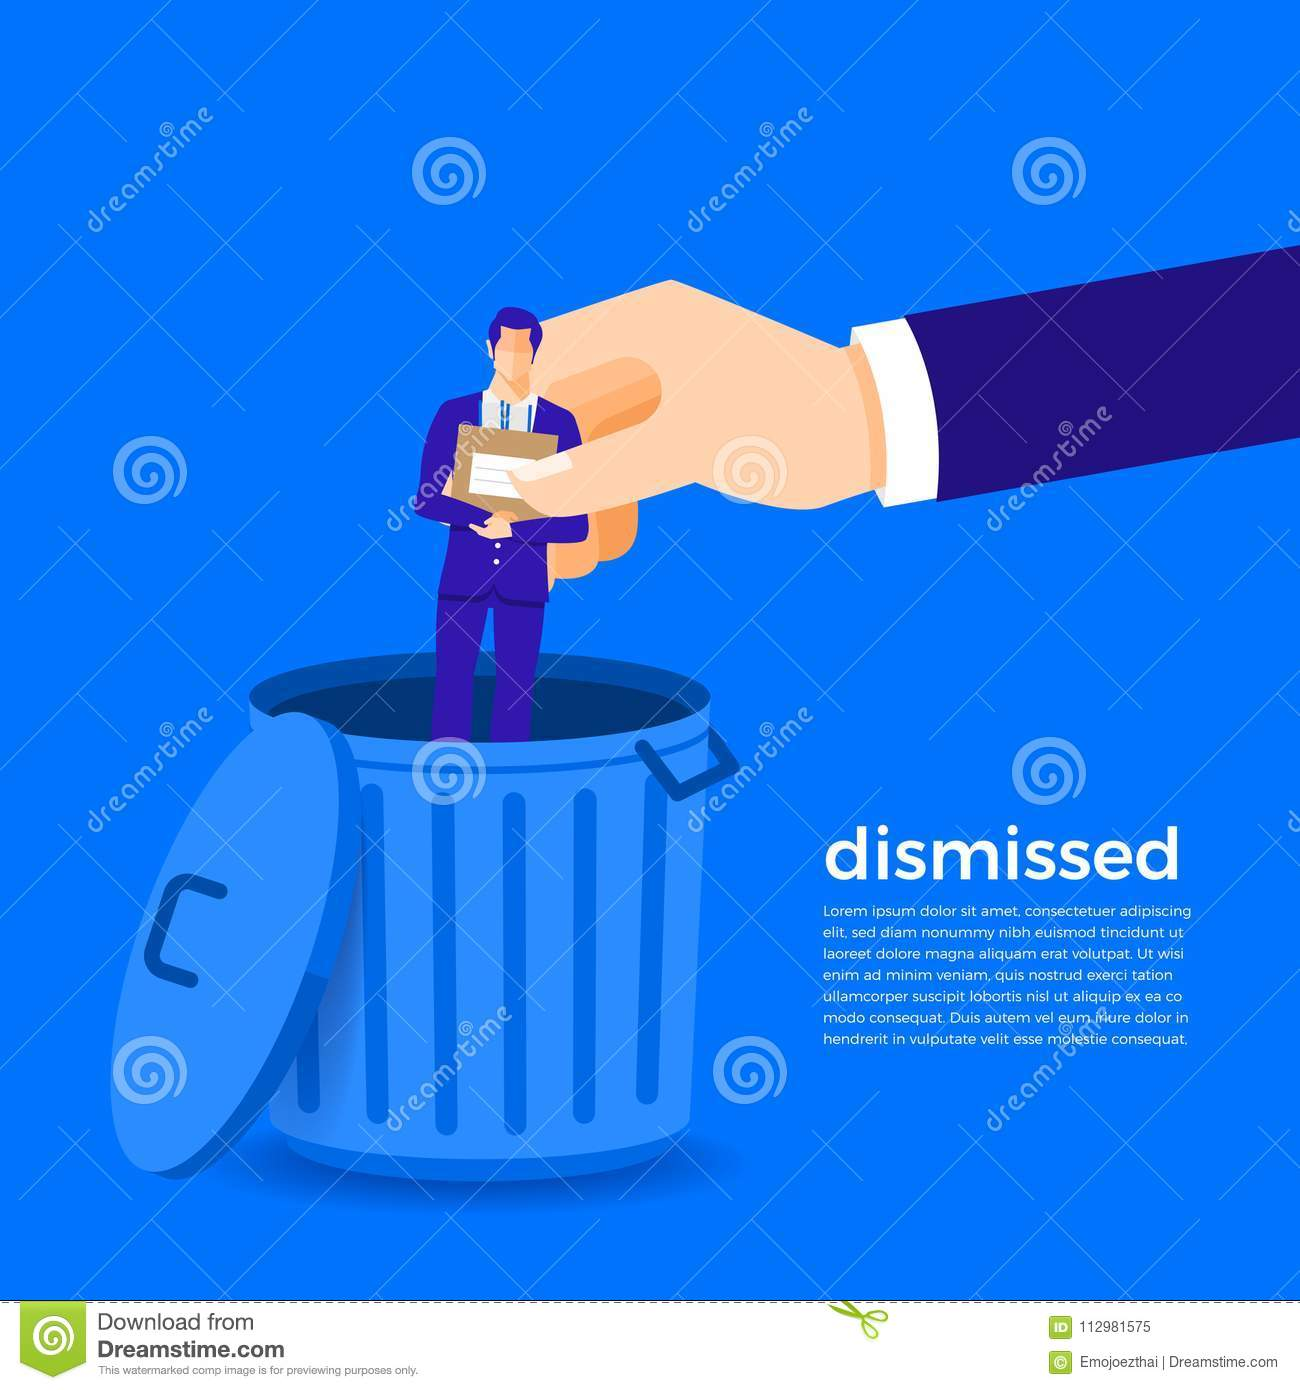 Flat design concept dimissed businessman. Vectir illustrate.